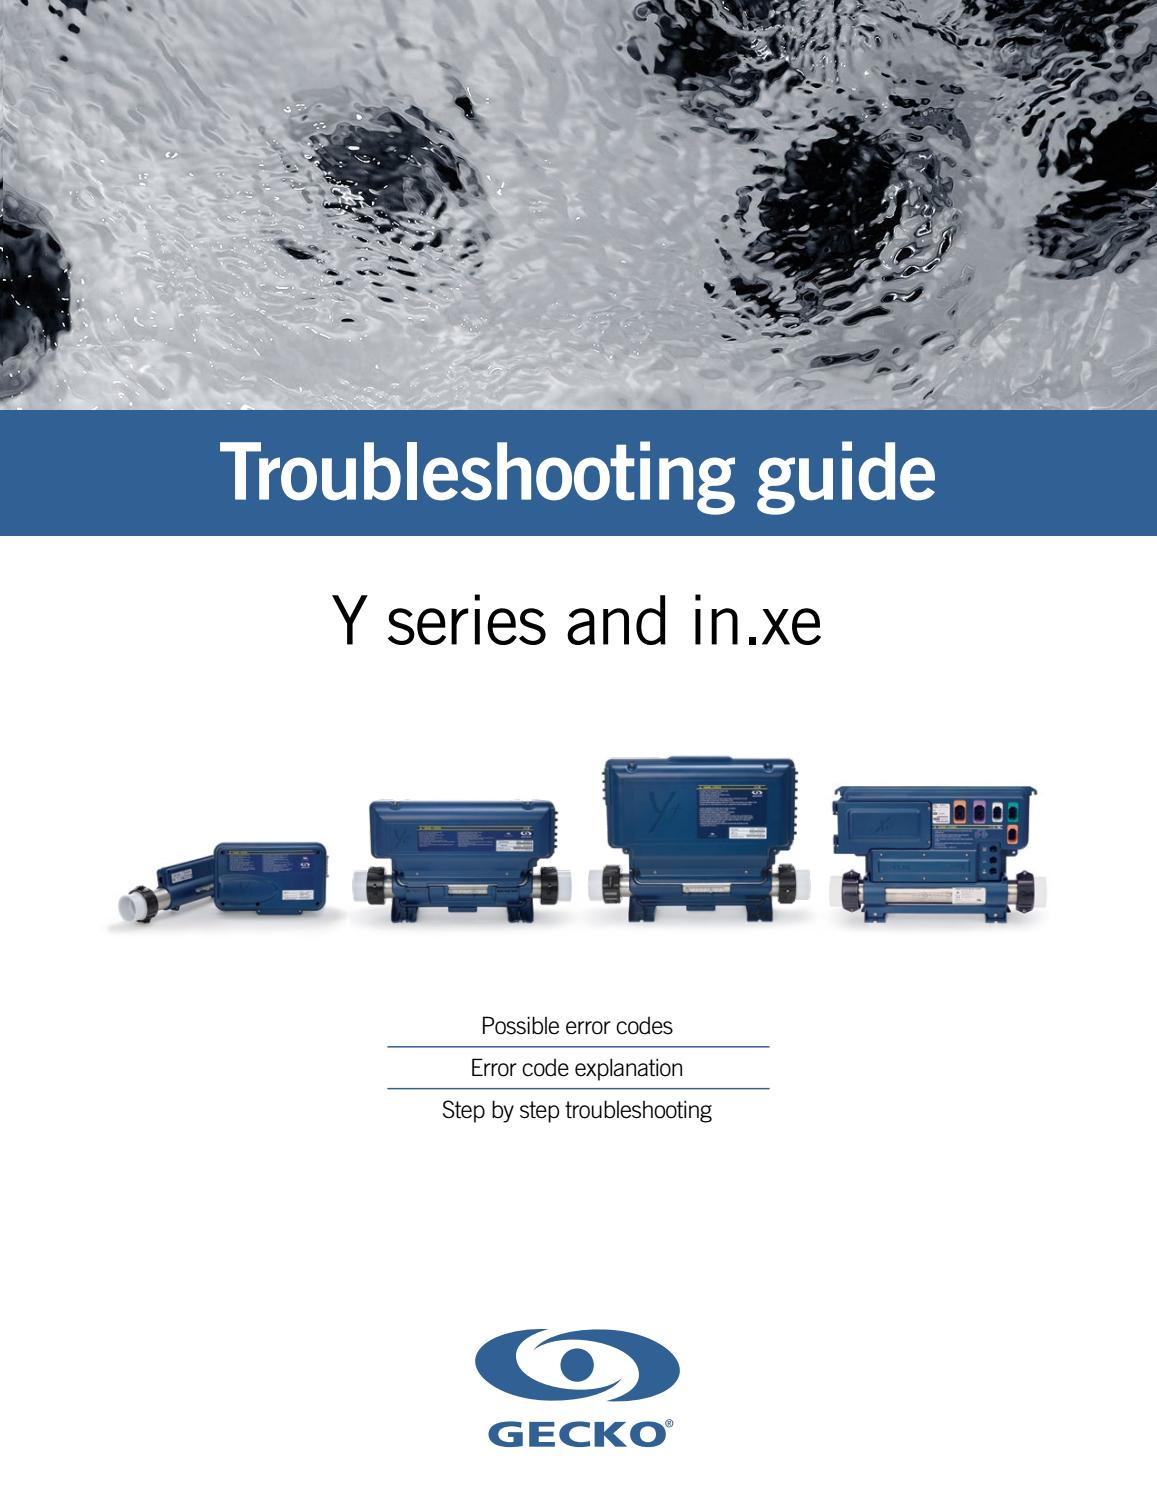 hight resolution of troubleshooting guide for y series in xe from gecko marketing